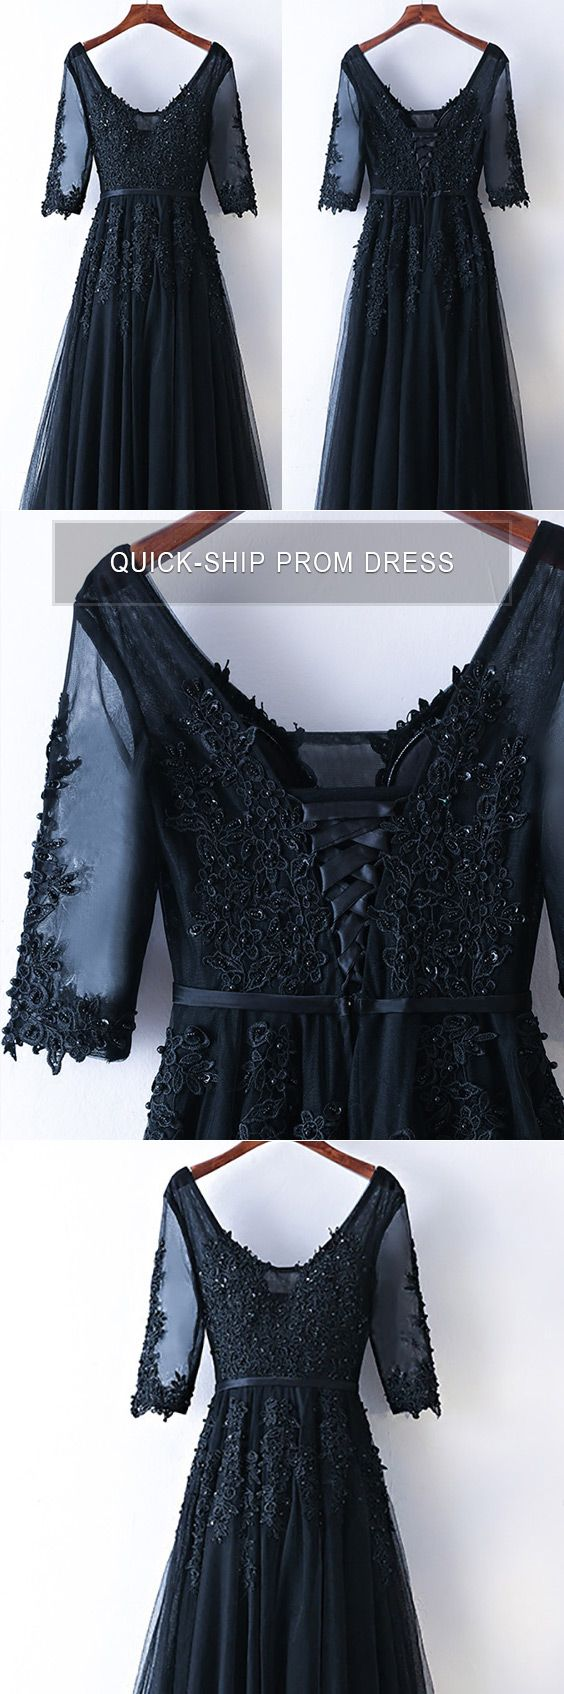 Modest long lace black prom party dress for less myx